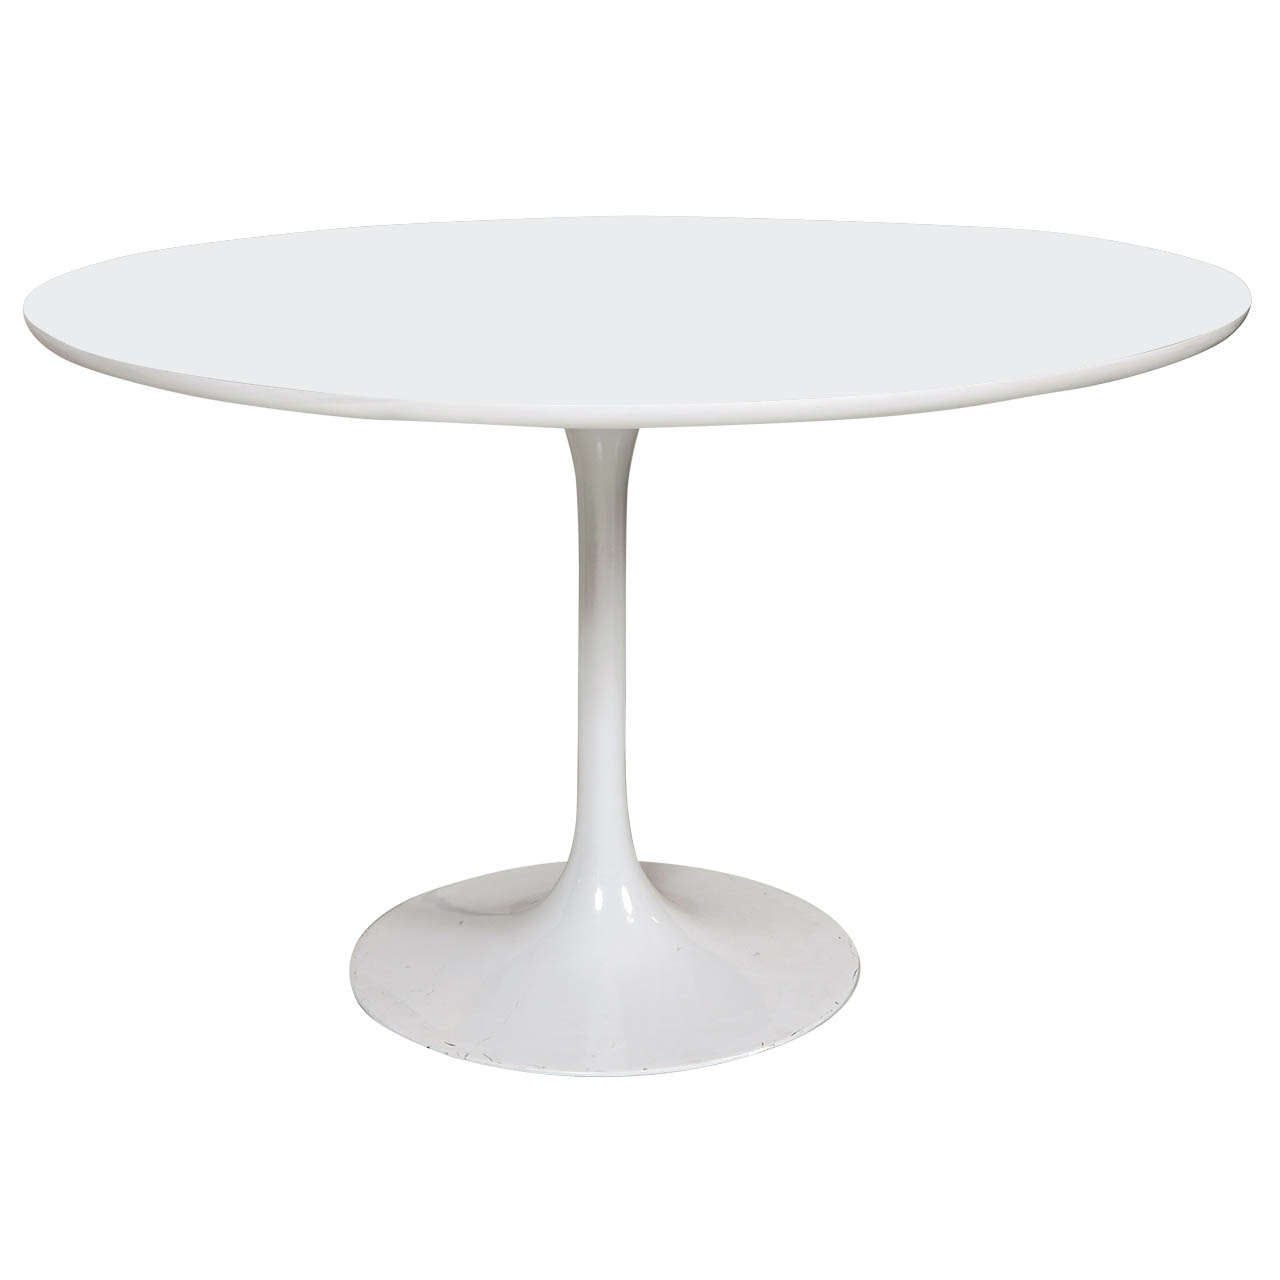 ... Eero Saarinen Mid-Century White Pedestal Table is no longer available